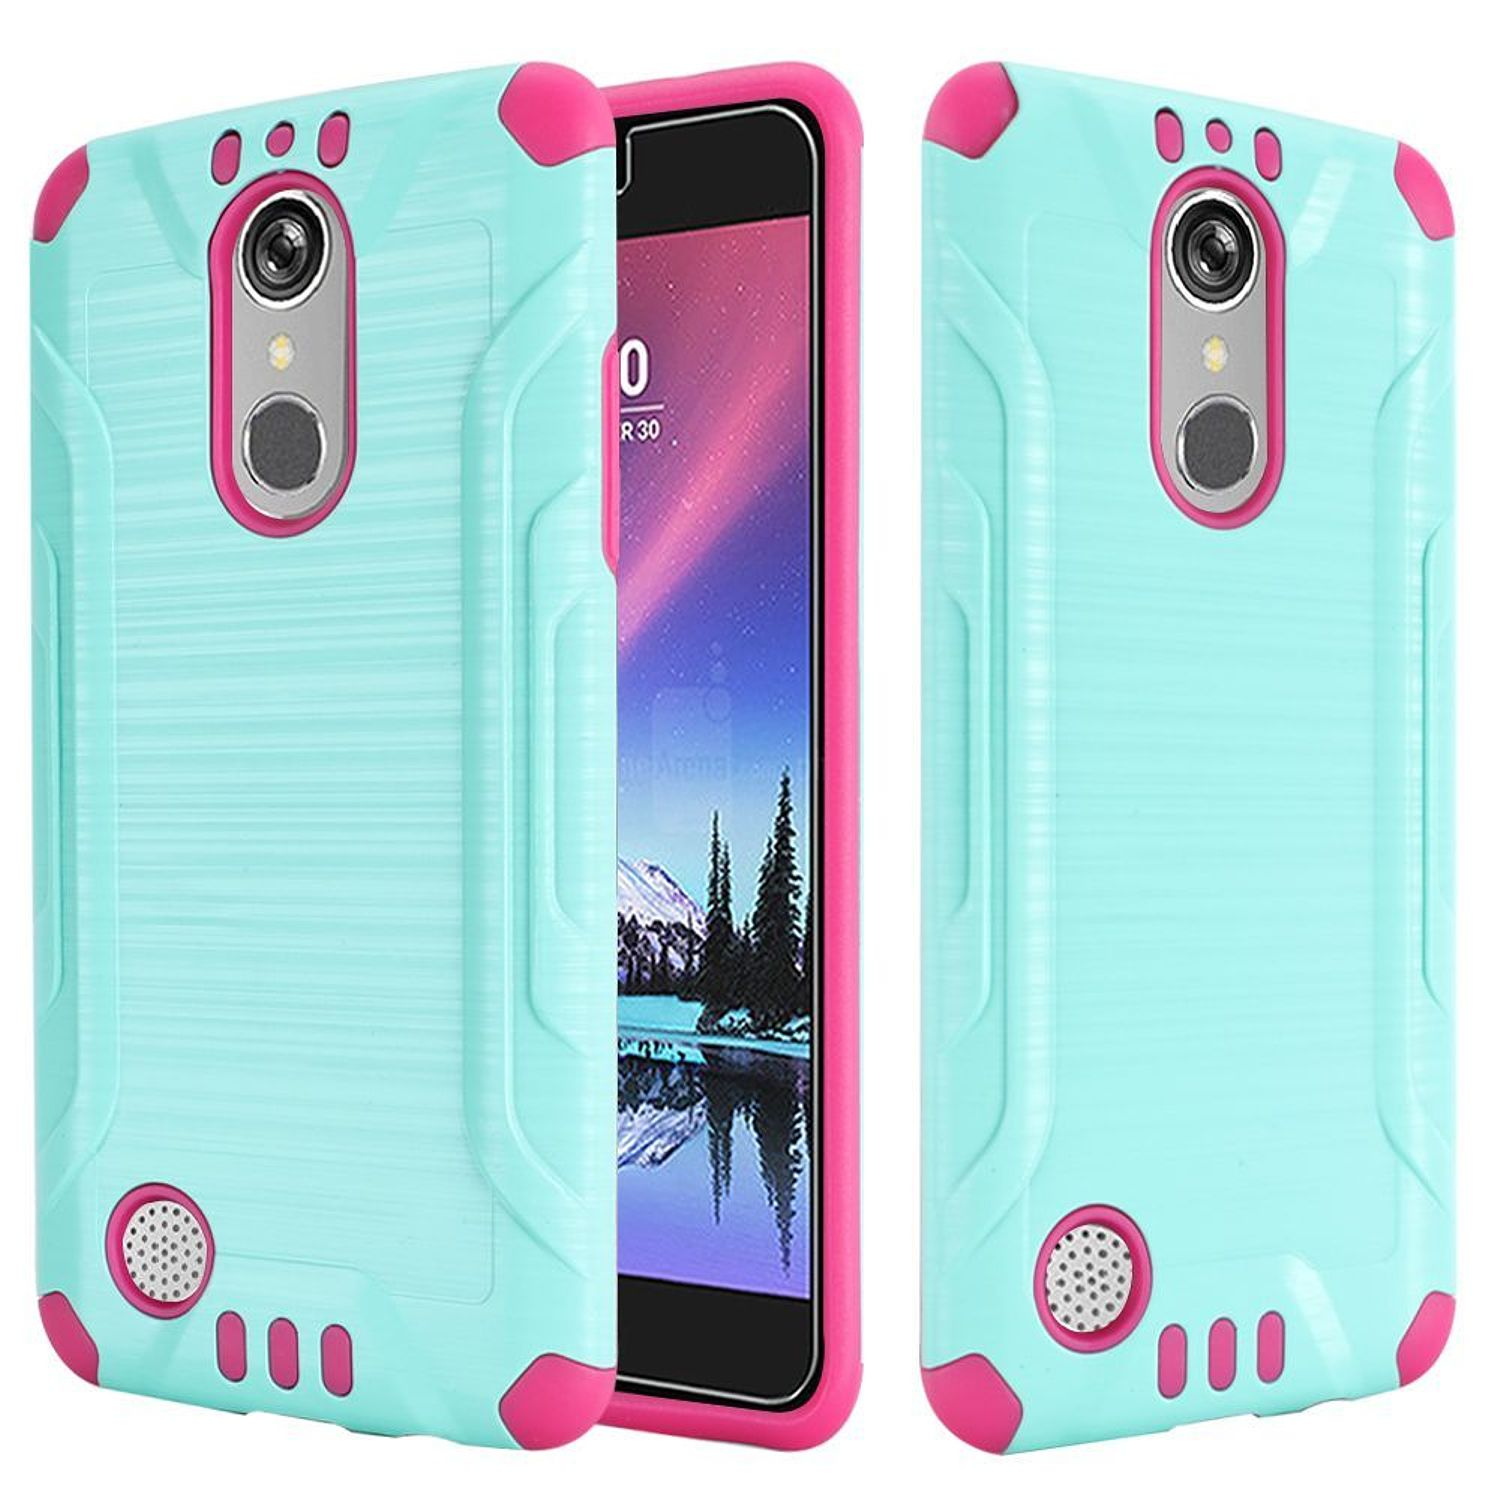 LG Grace 4G/Harmony/K20 Plus/K20 V Case, by HR Wireless Dual Layer Hybrid Rubber Coated Hard Plastic/Soft Silicone Case Cover For LG Grace 4G/Harmony/K20 Plus/K20 V, Teal/Hot Pink